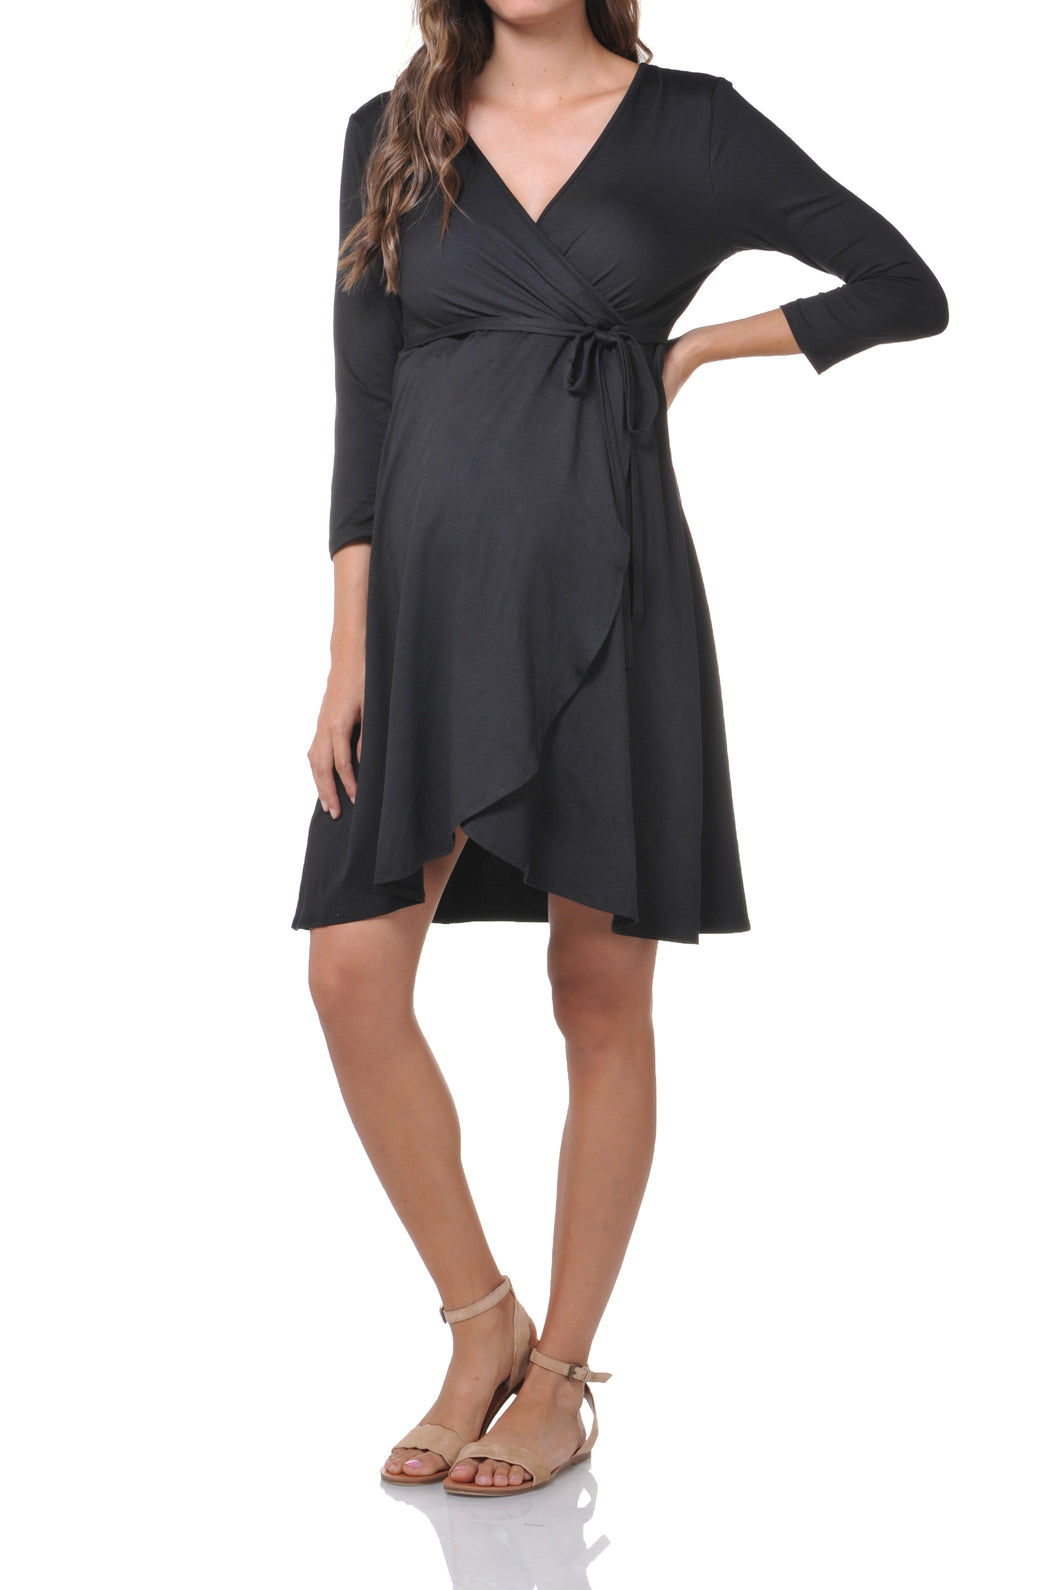 3/4 Sleeve Solid Nursing Dress